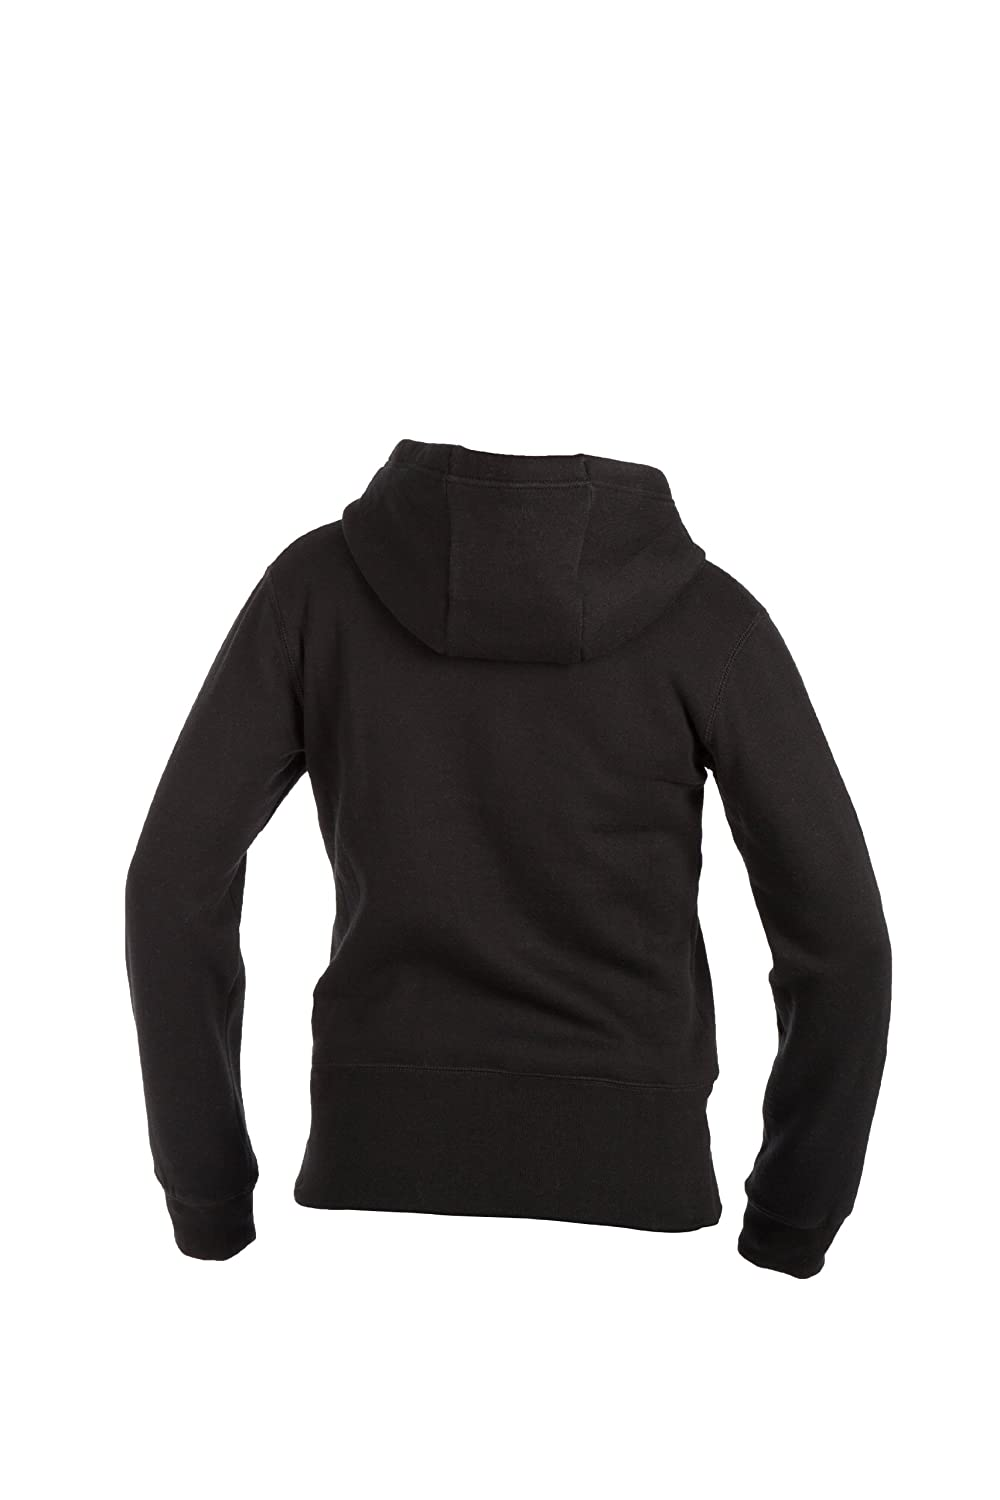 Russell Athletic Womens Hoodie with Full-Length Zip